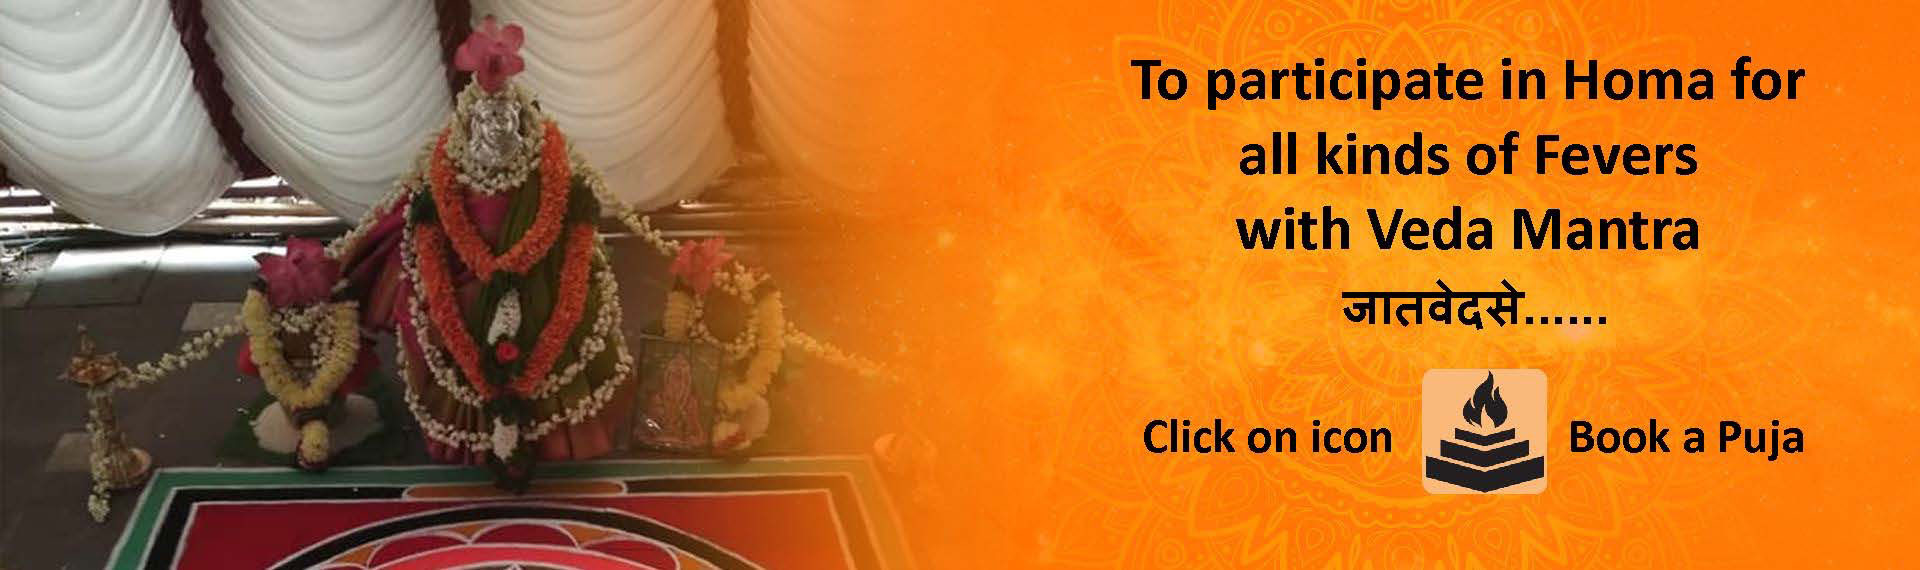 Homa for all kinds of fevers with veda mantra